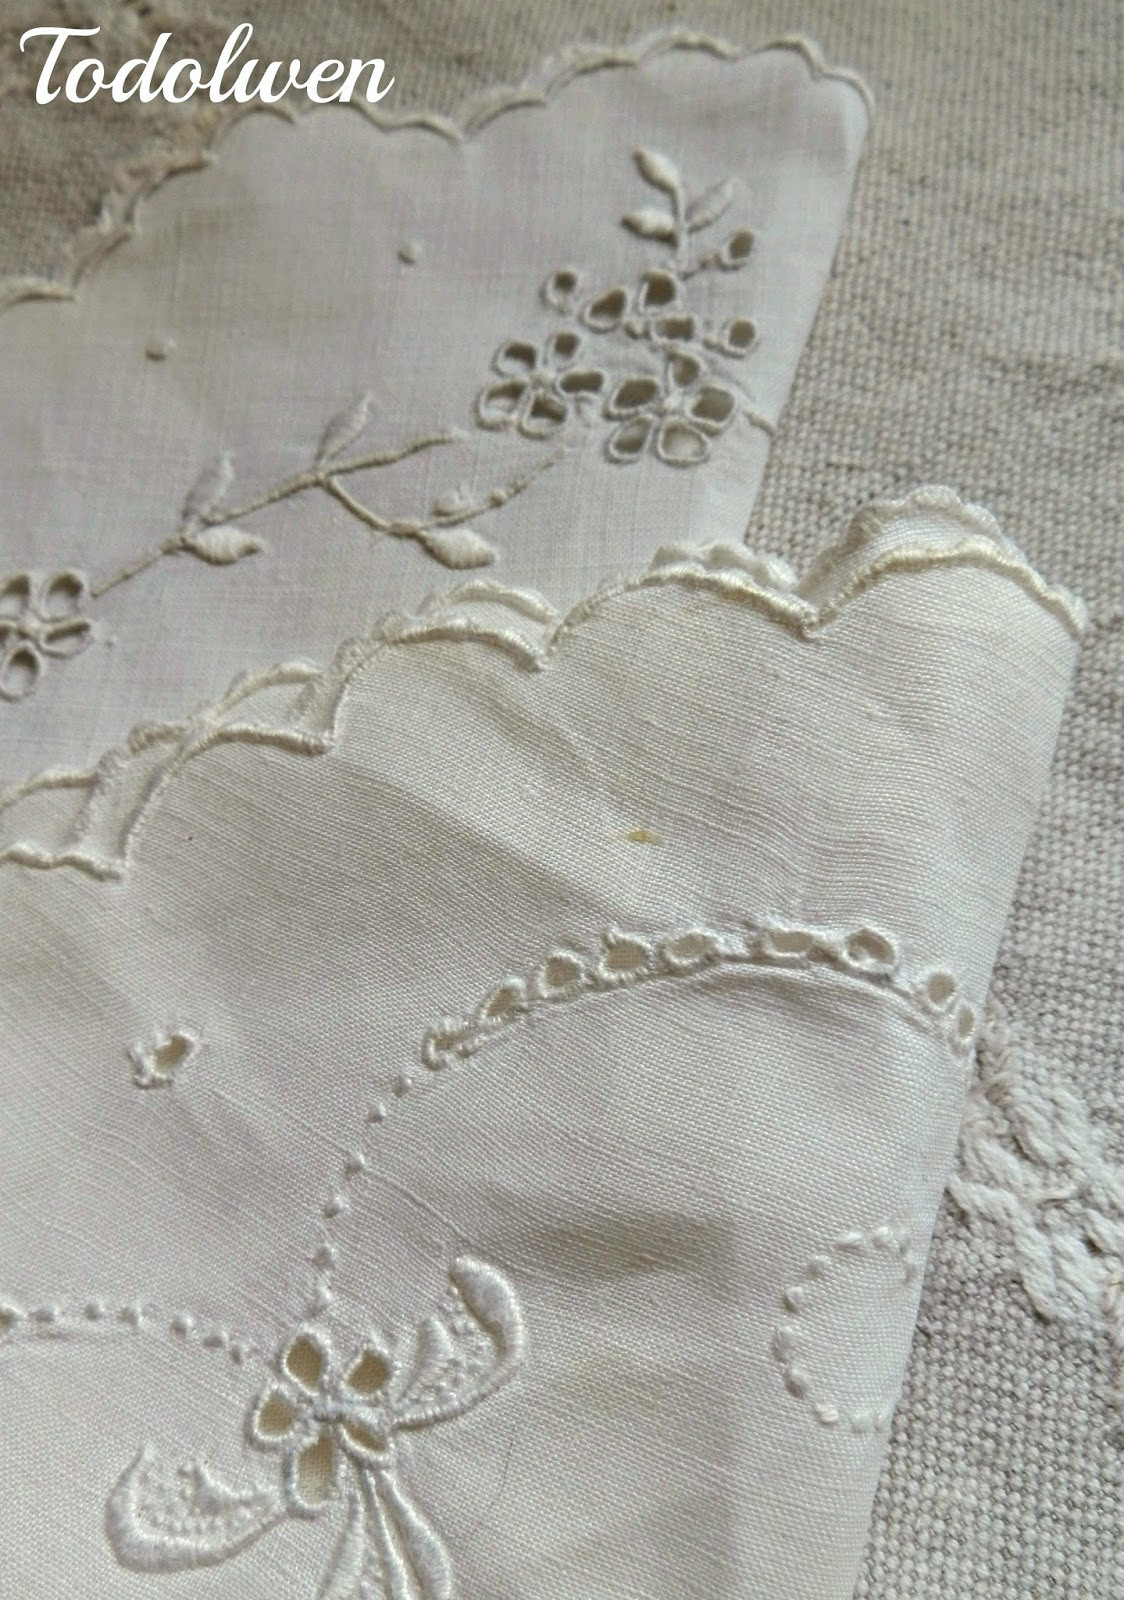 Todolwen Two Small Fabric Doilies